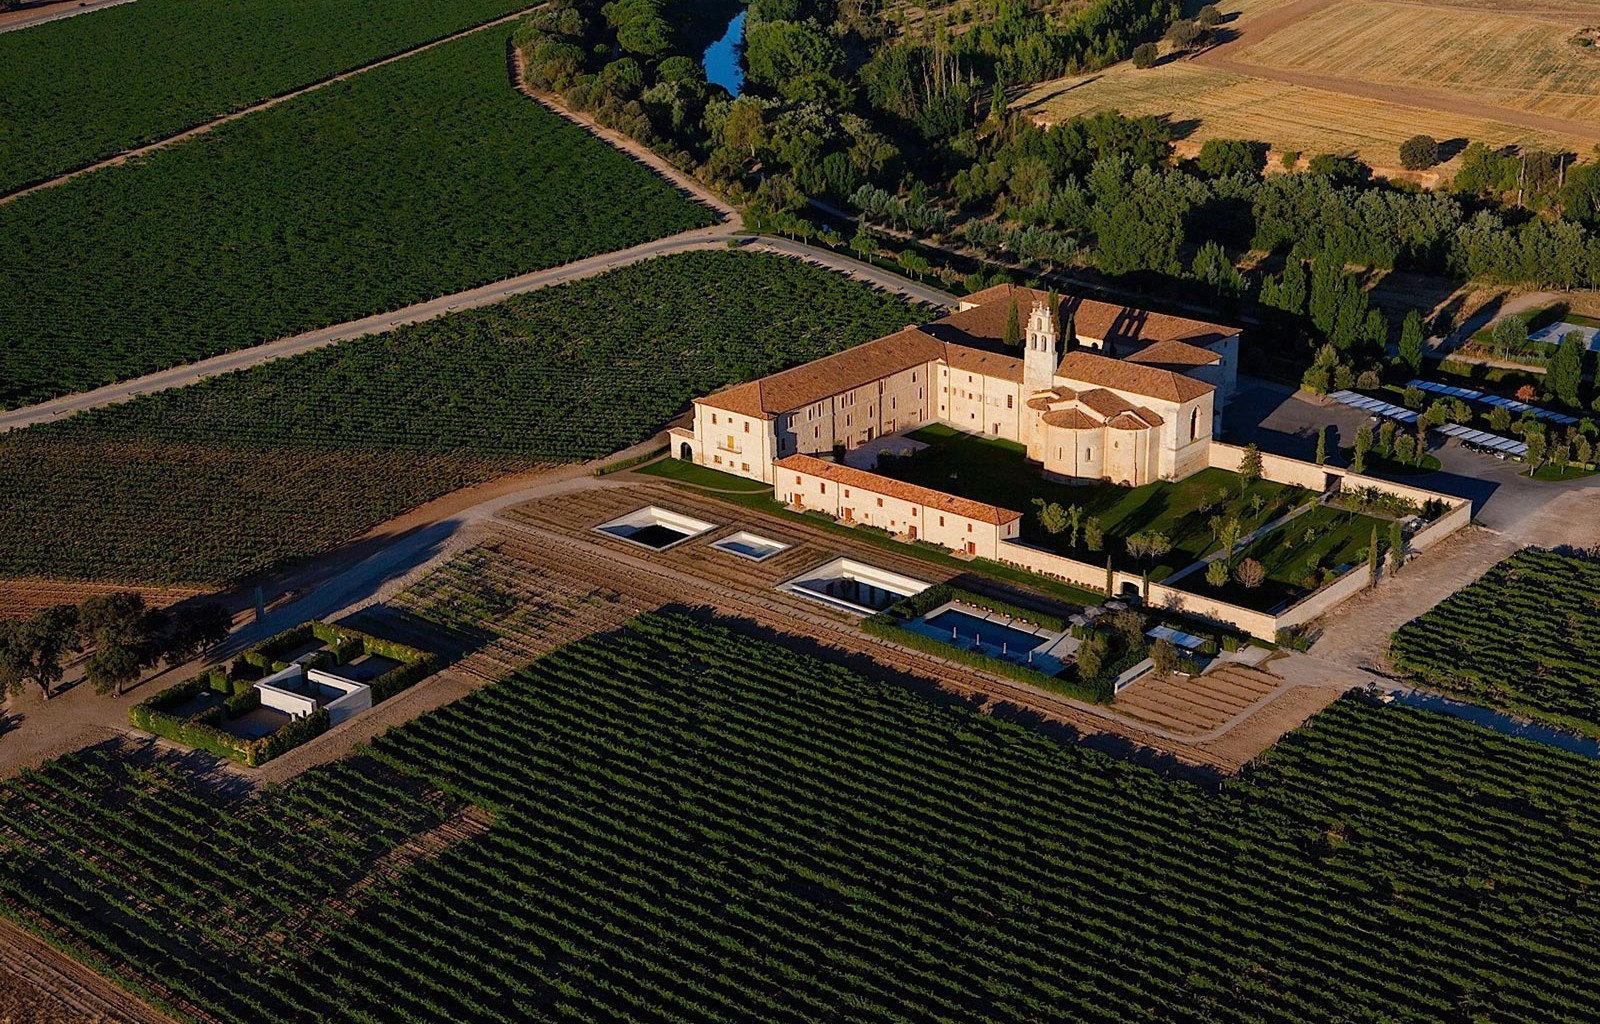 Dream wedding destination Sardon de Duero, Spain